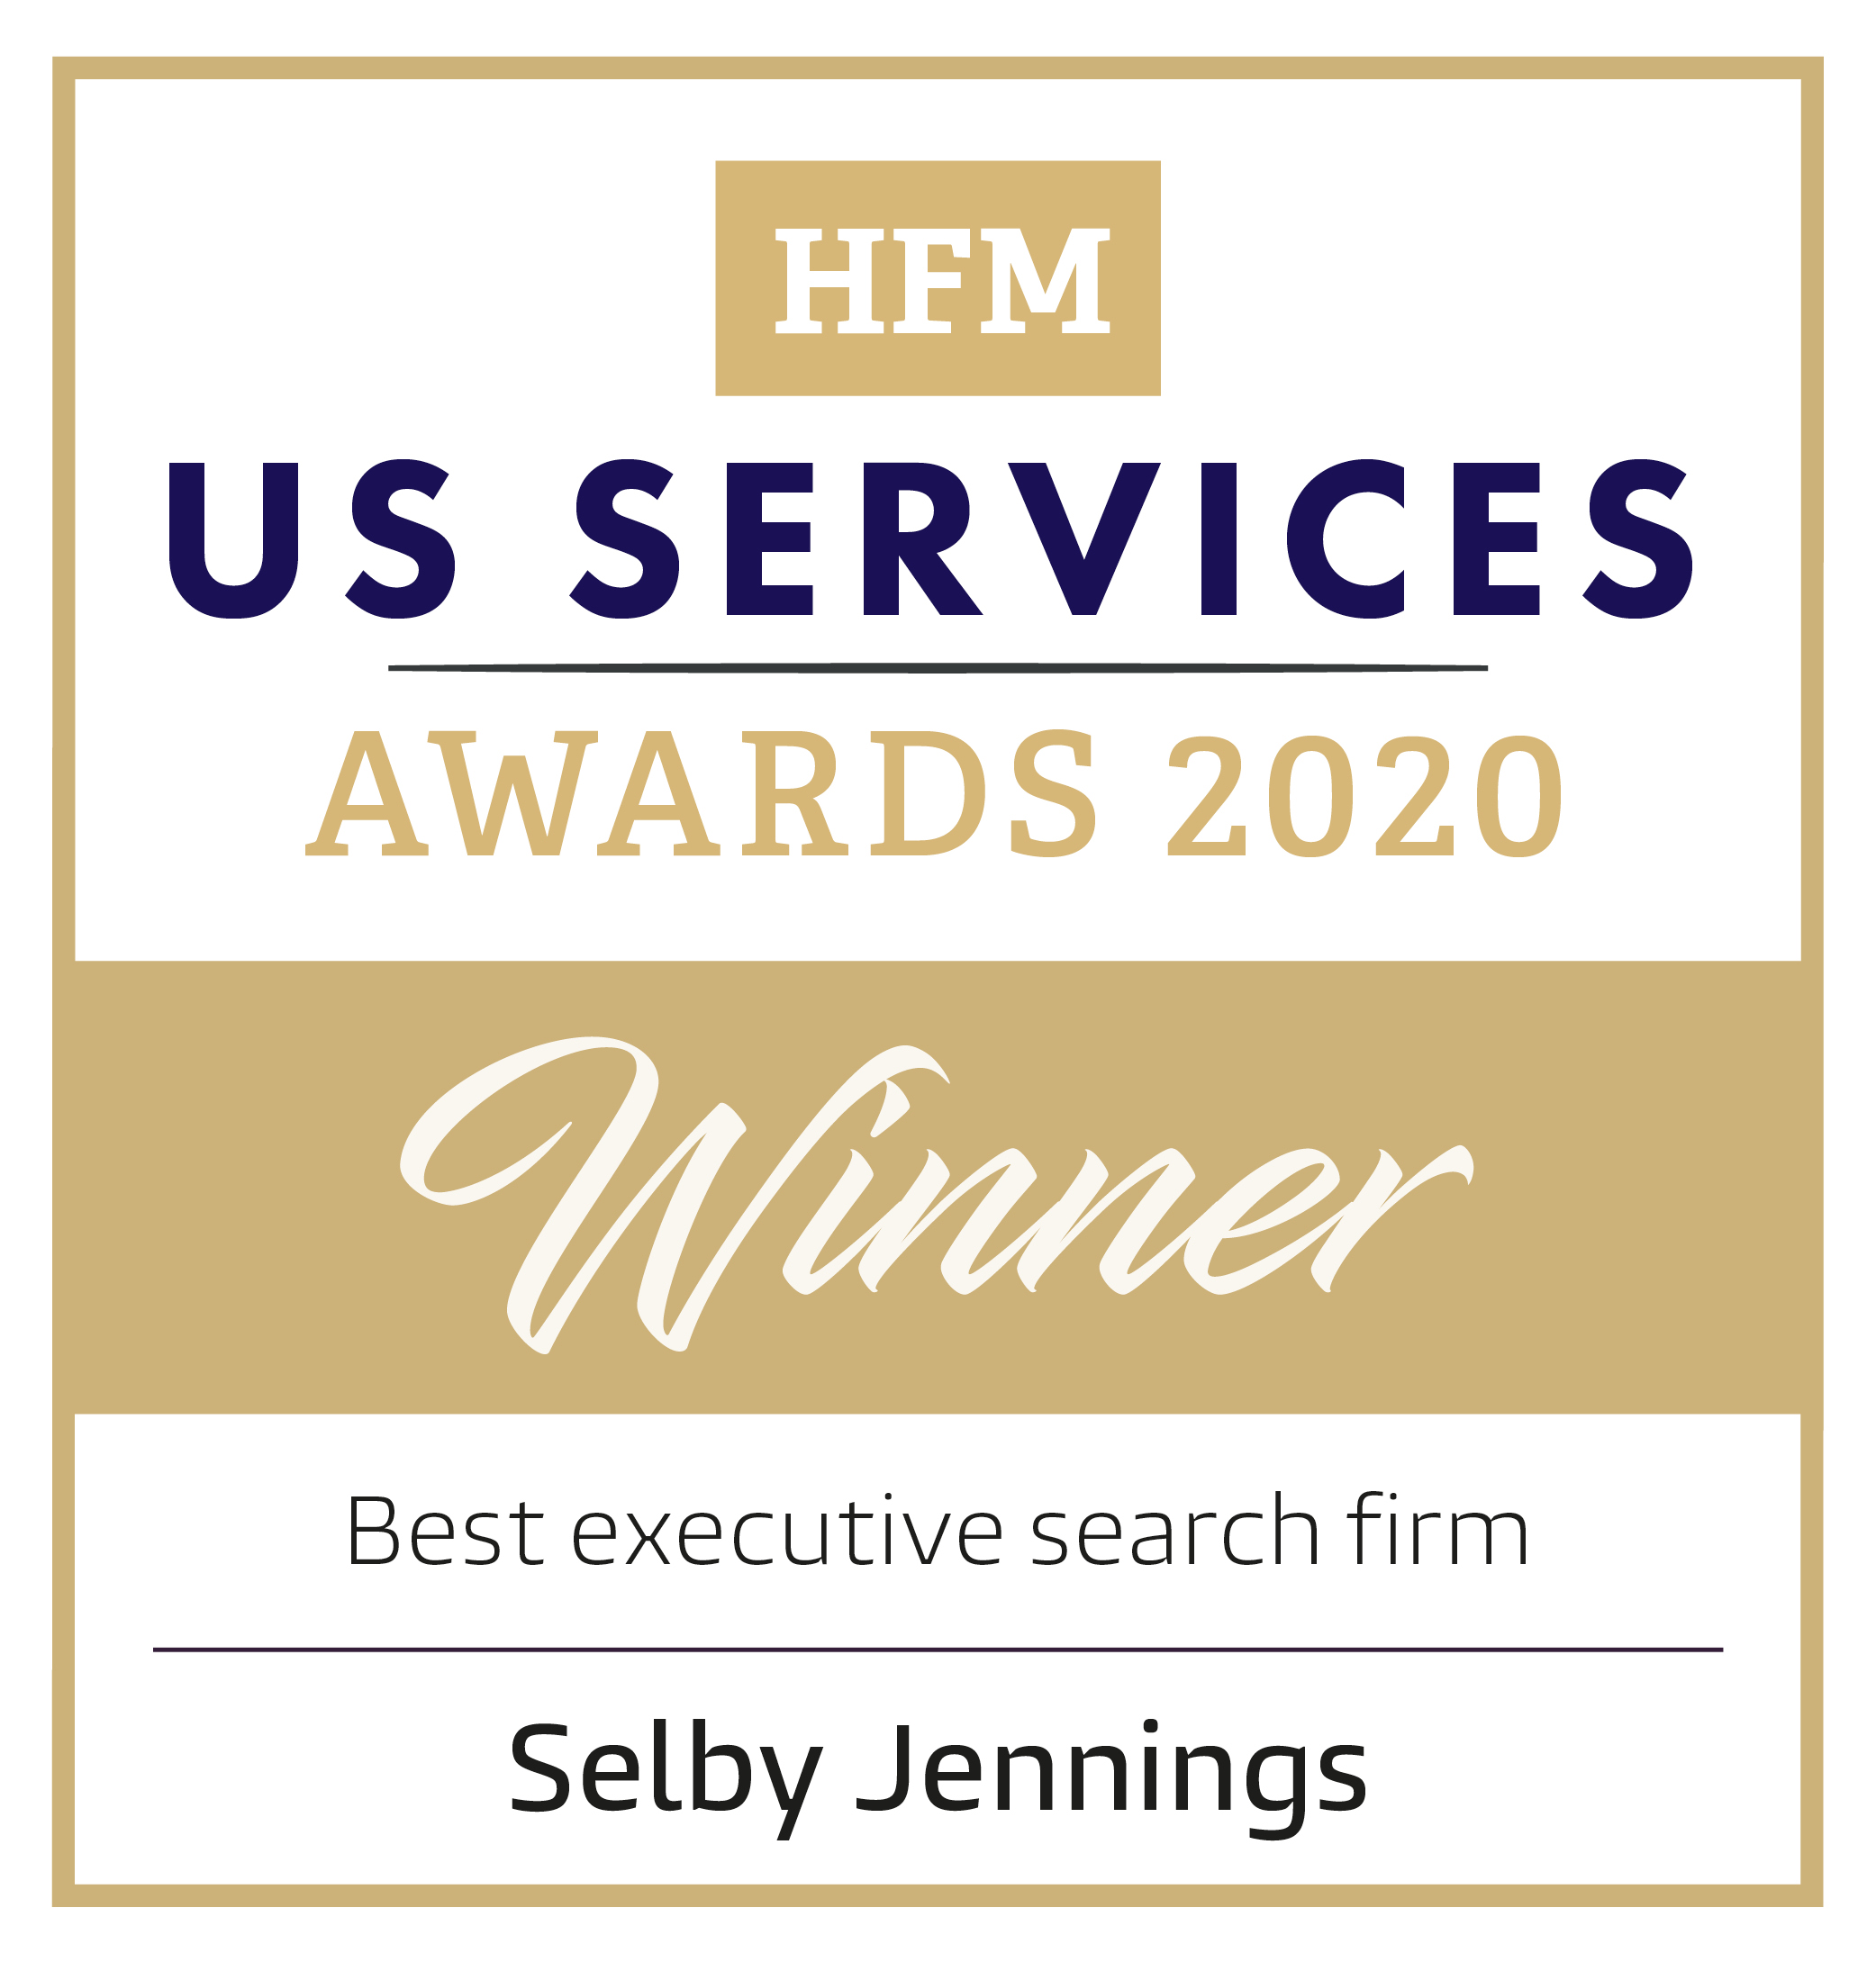 HFM US Services Awards 2020: Best Executive Search Firm